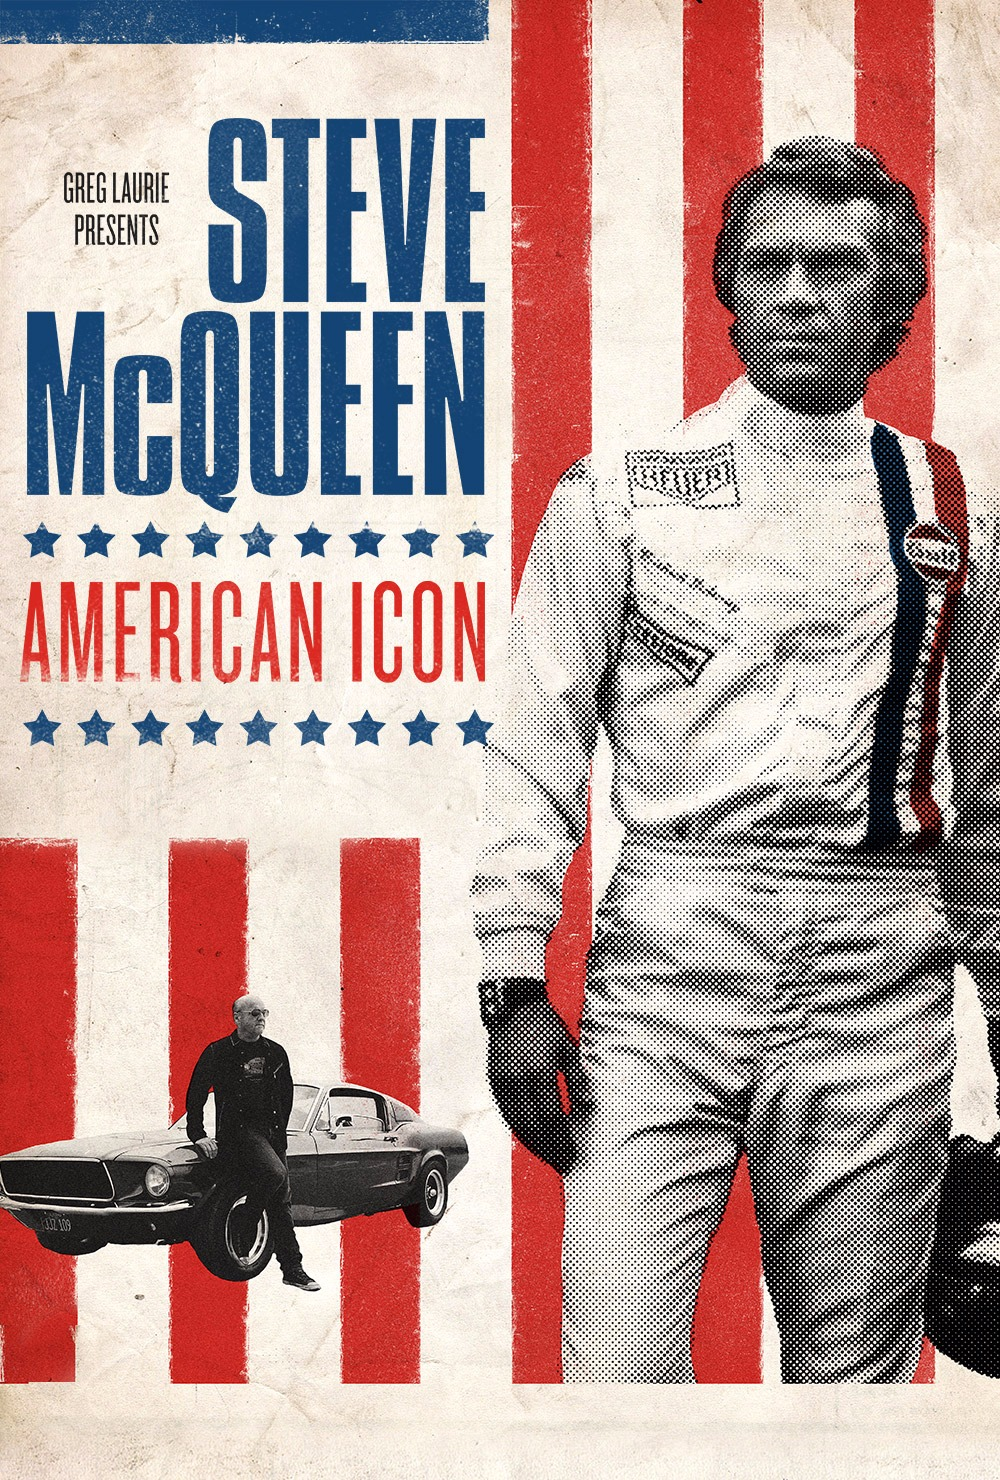 Steve McQueen: American Icon - Movies - Special Screenings ...